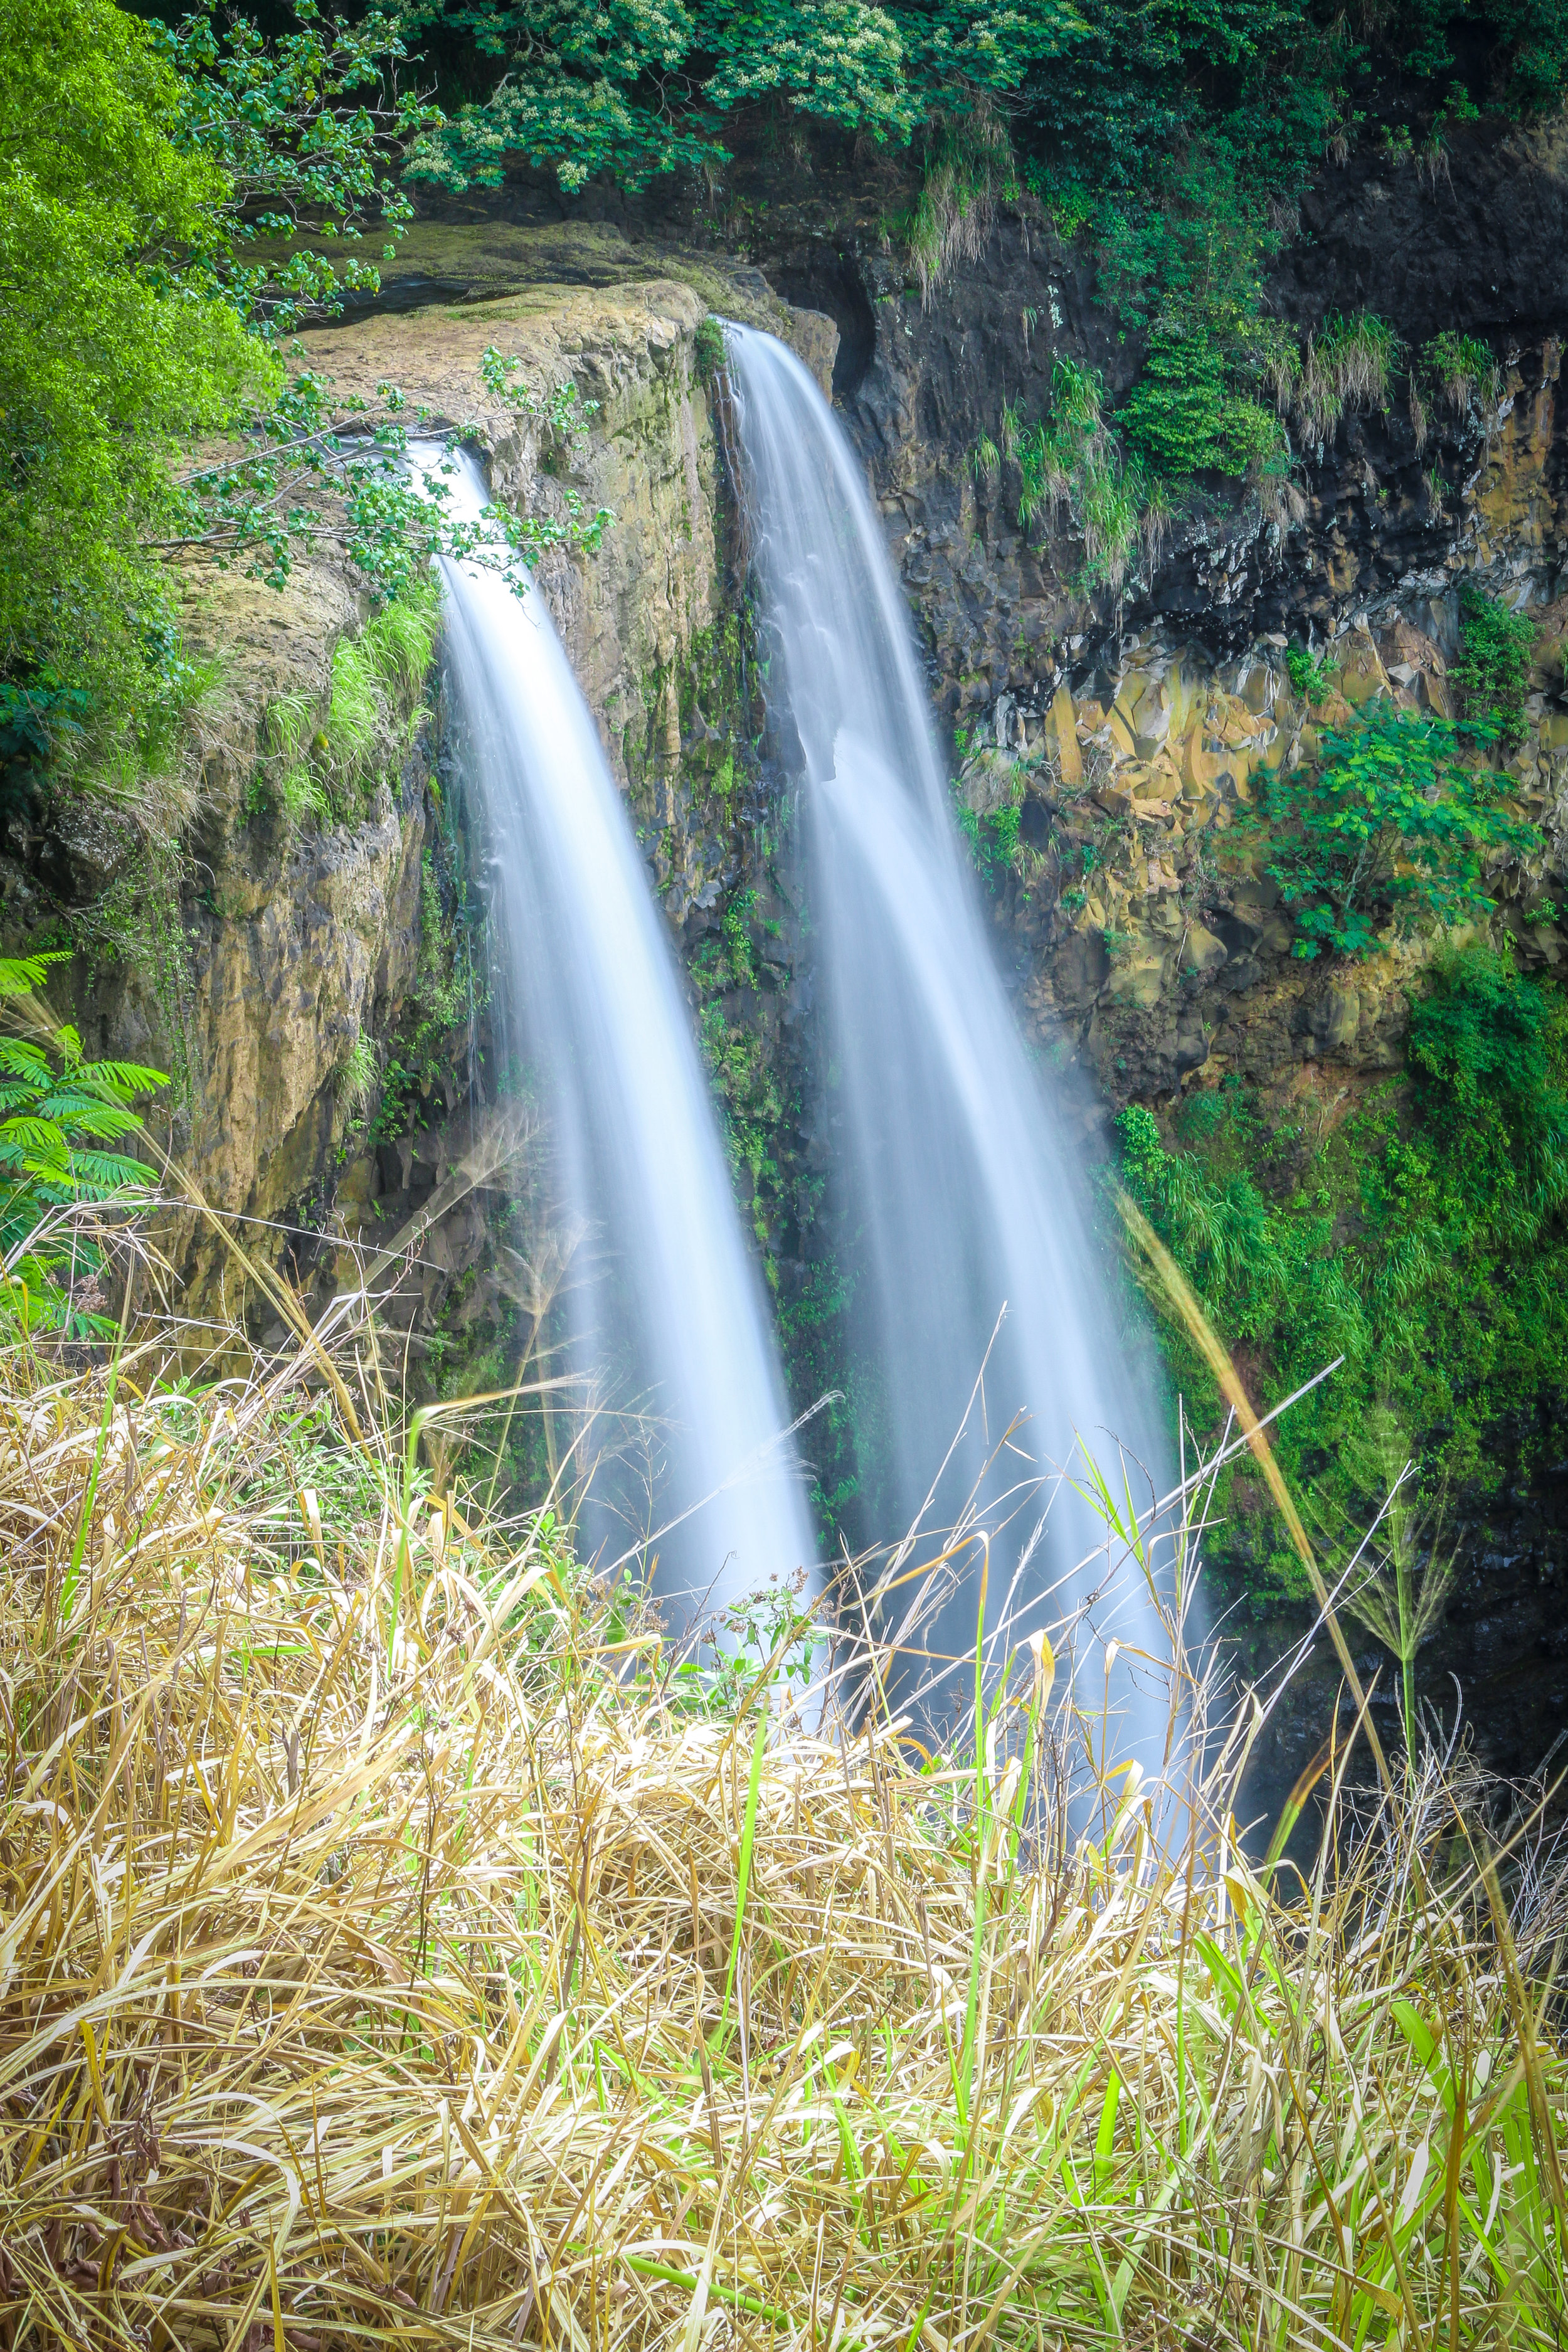 Kauai Hawaii HI photos photography waterfall falls